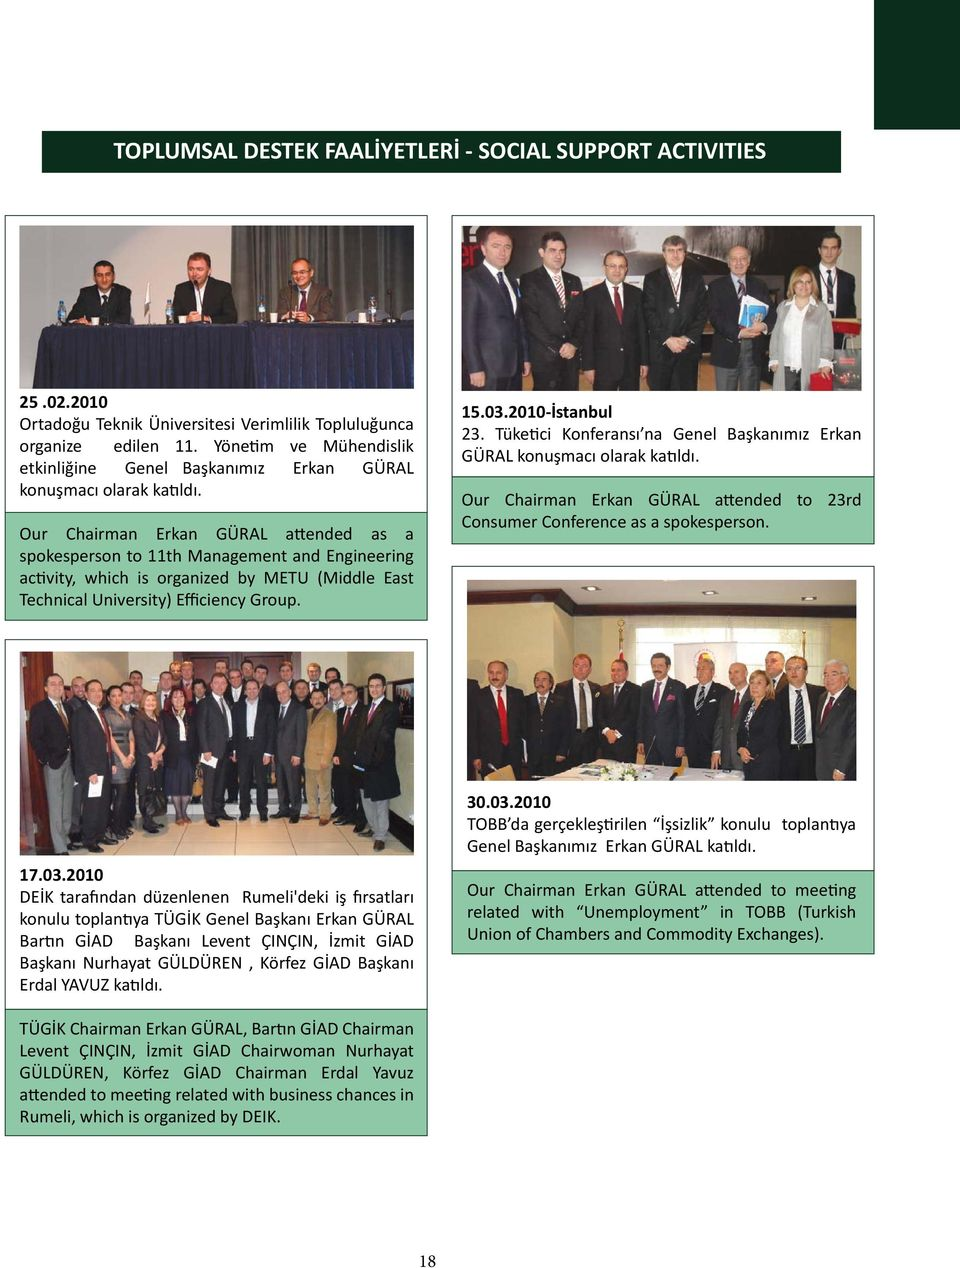 Our Chairman Erkan GÜRAL attended as a spokesperson to 11th Management and Engineering activity, which is organized by METU (Middle East Technical University) Efficiency Group. 15.03.2010-İstanbul 23.